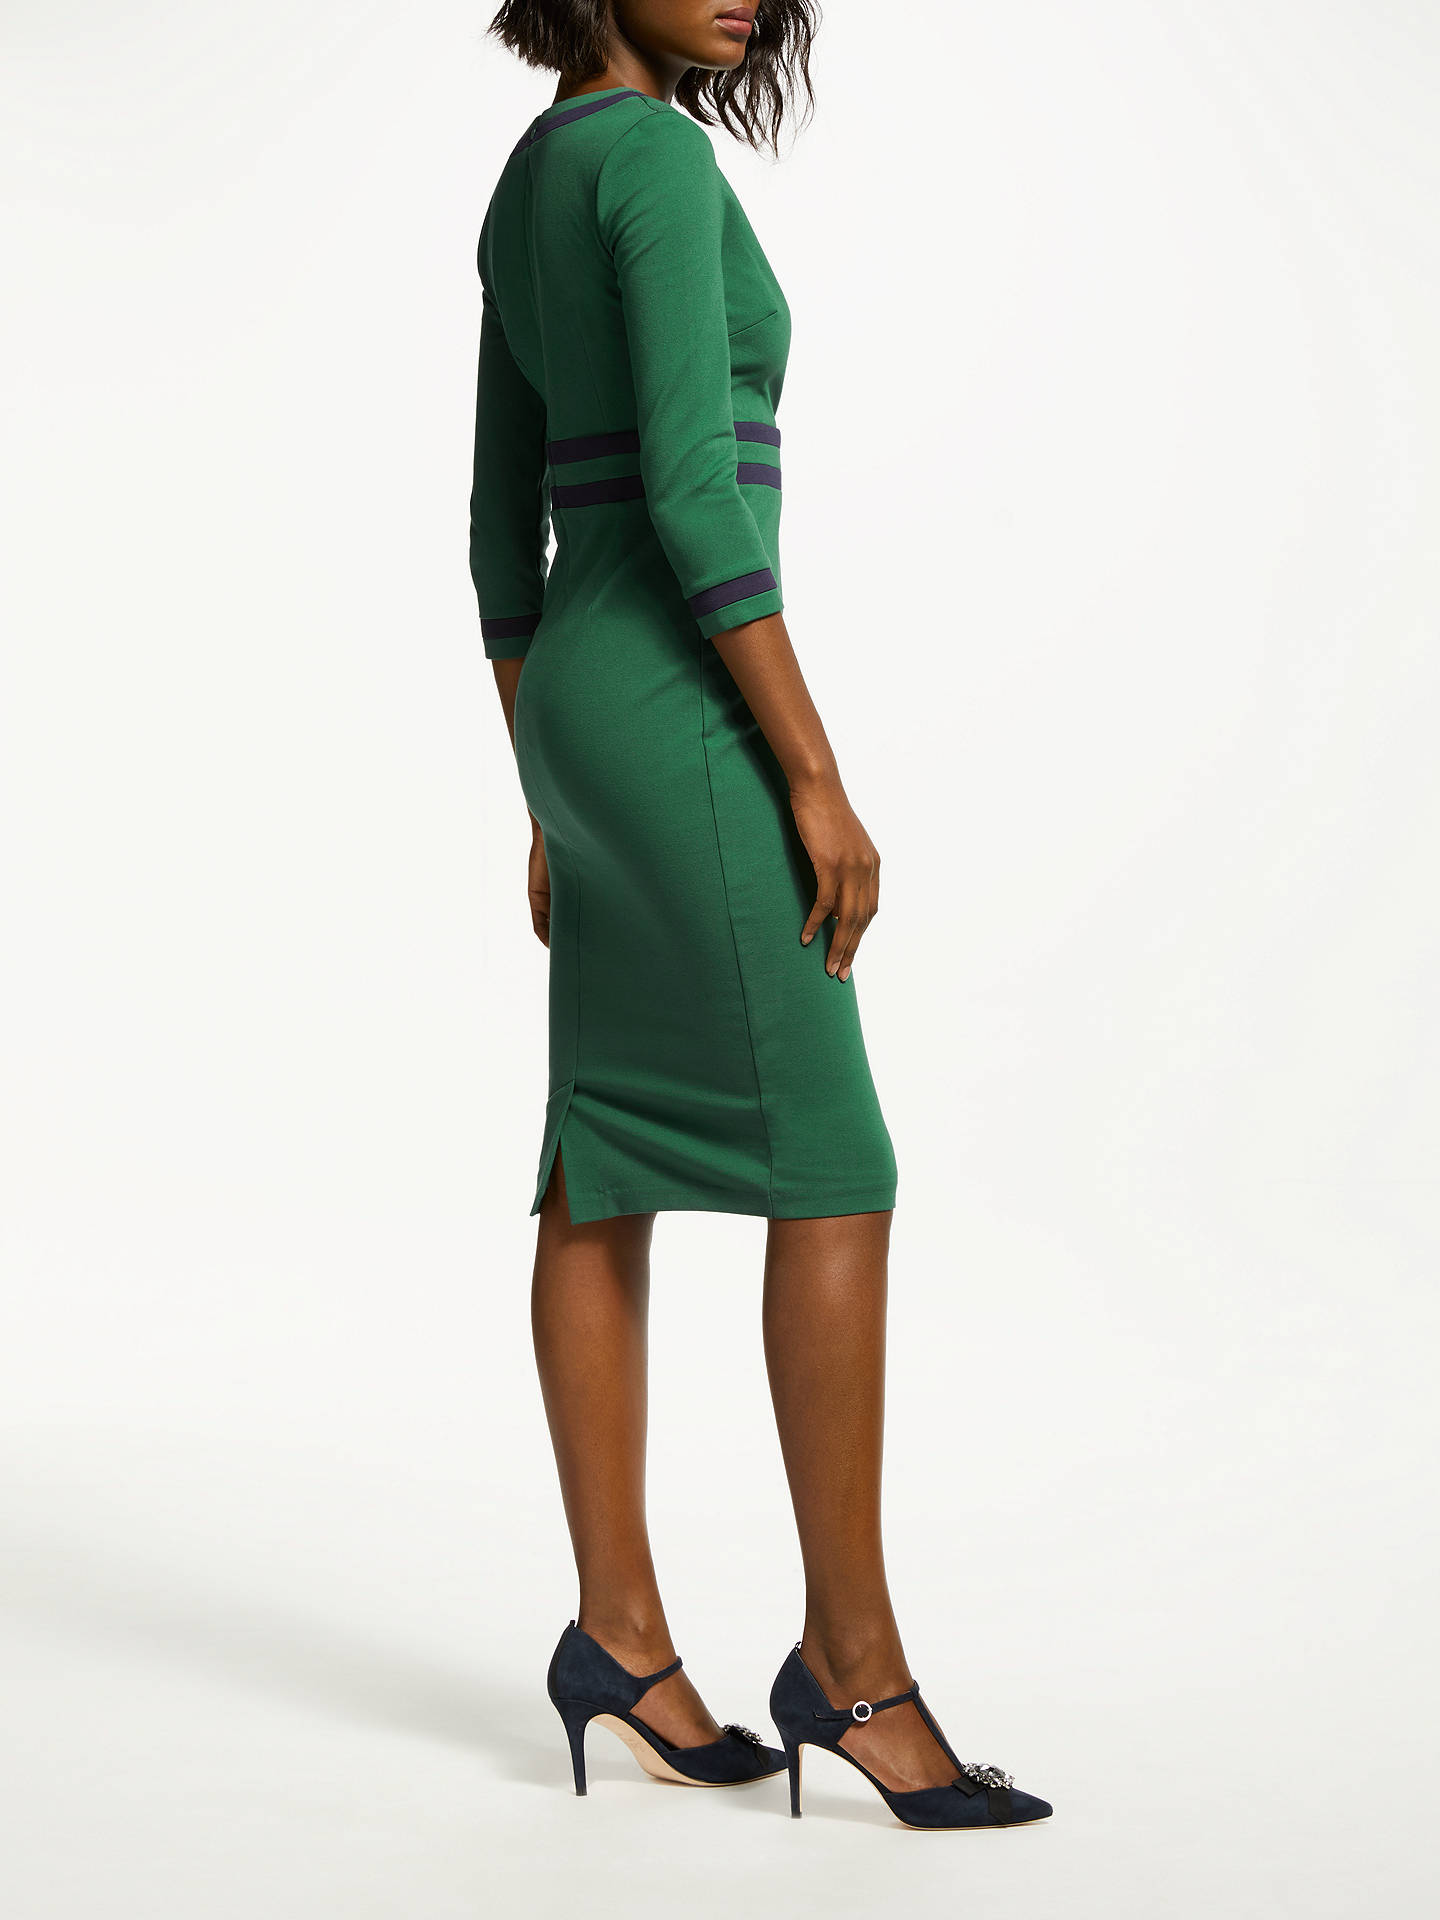 BuyBoden Nellie Ponte Pencil Dress, Amazon Green, 12 Online at johnlewis.com